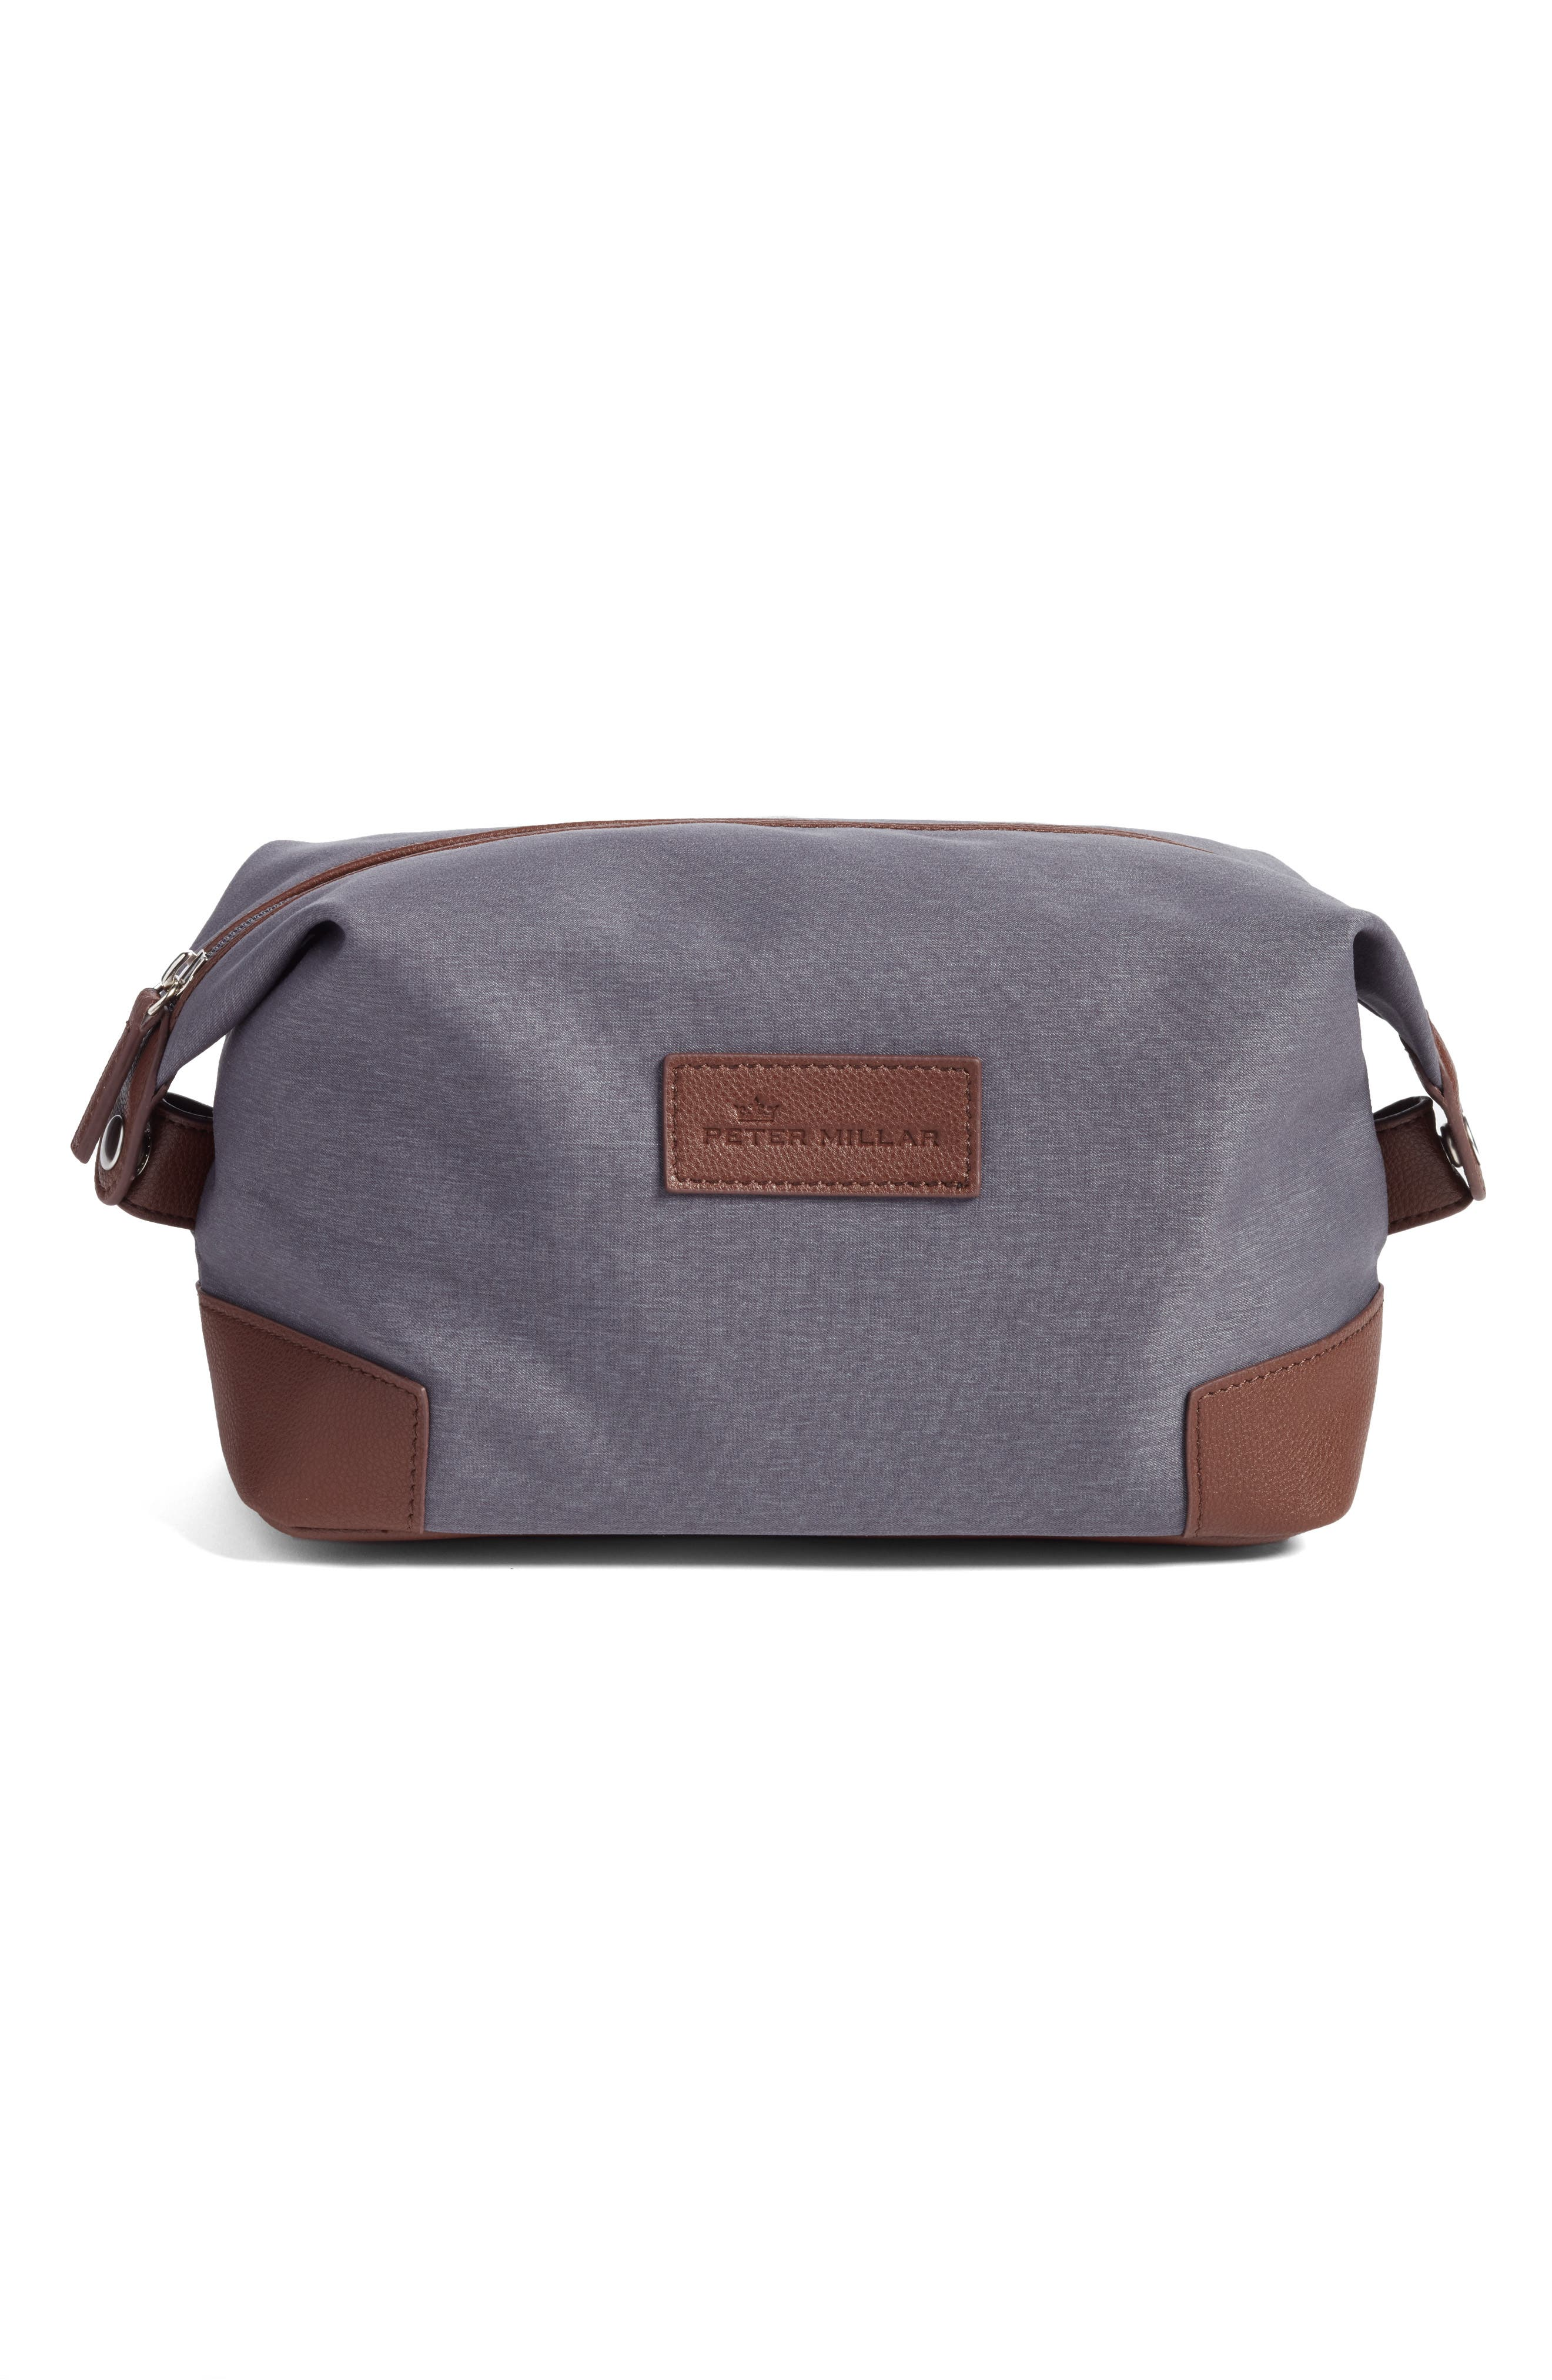 Heathered Twill Dopp Kit,                             Main thumbnail 1, color,                             Charcoal